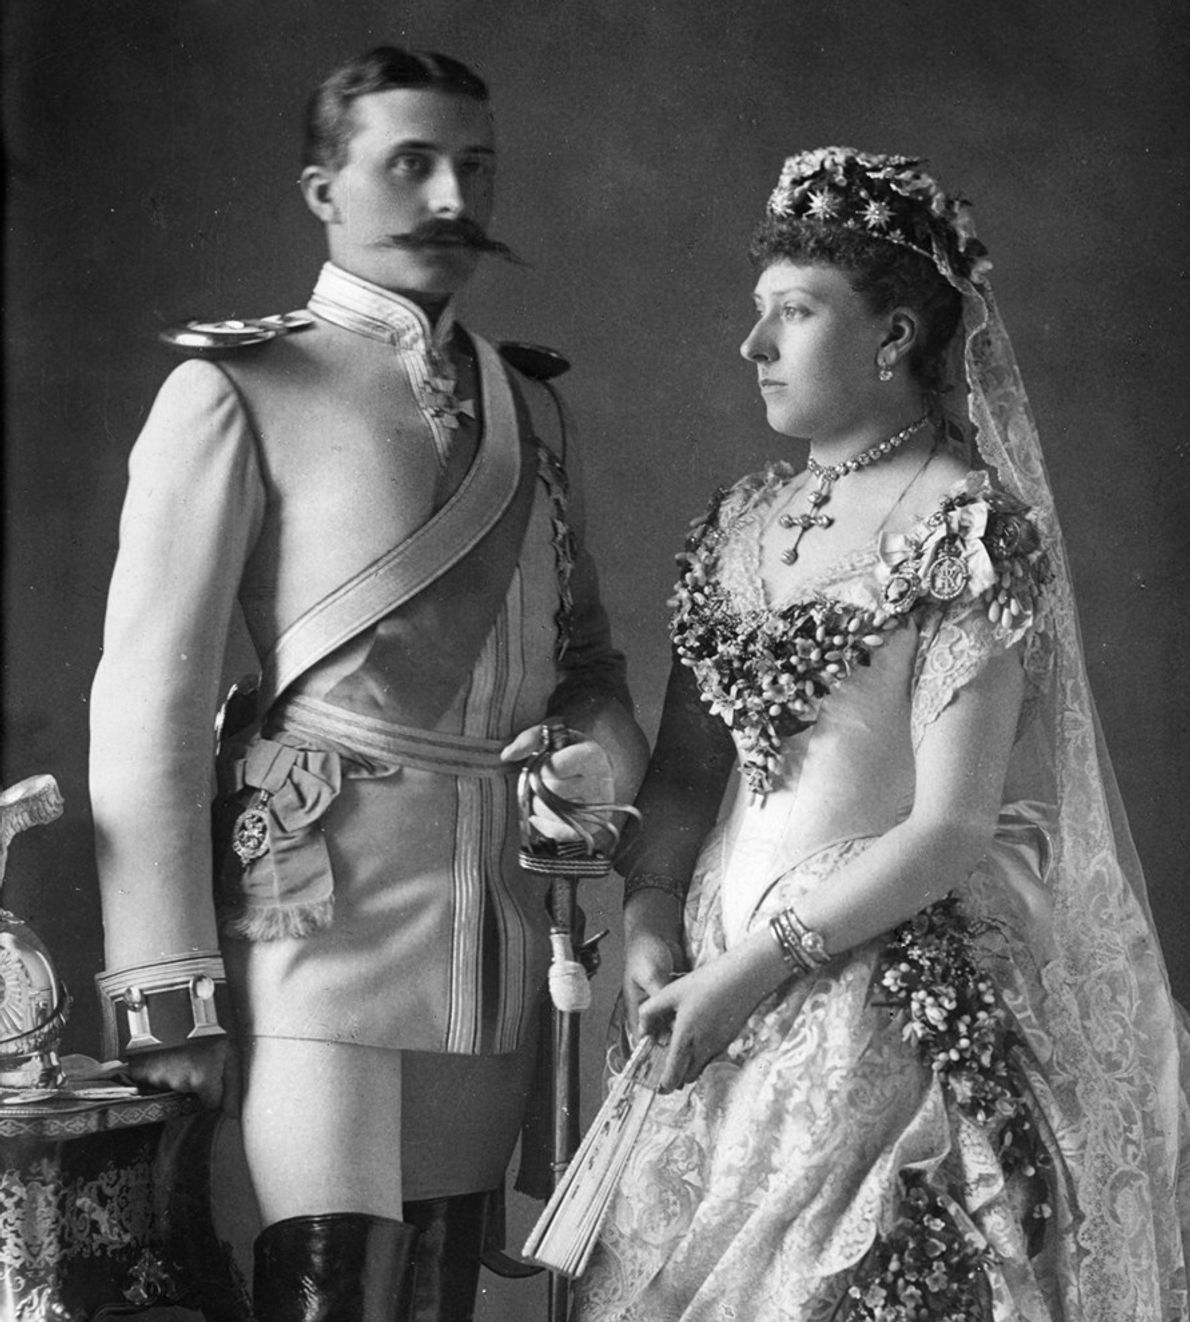 Queen Victoria's newlywed daughter, Princess Beatrice, poses for a wedding snapshot with Prince Henry of Battenberg ...